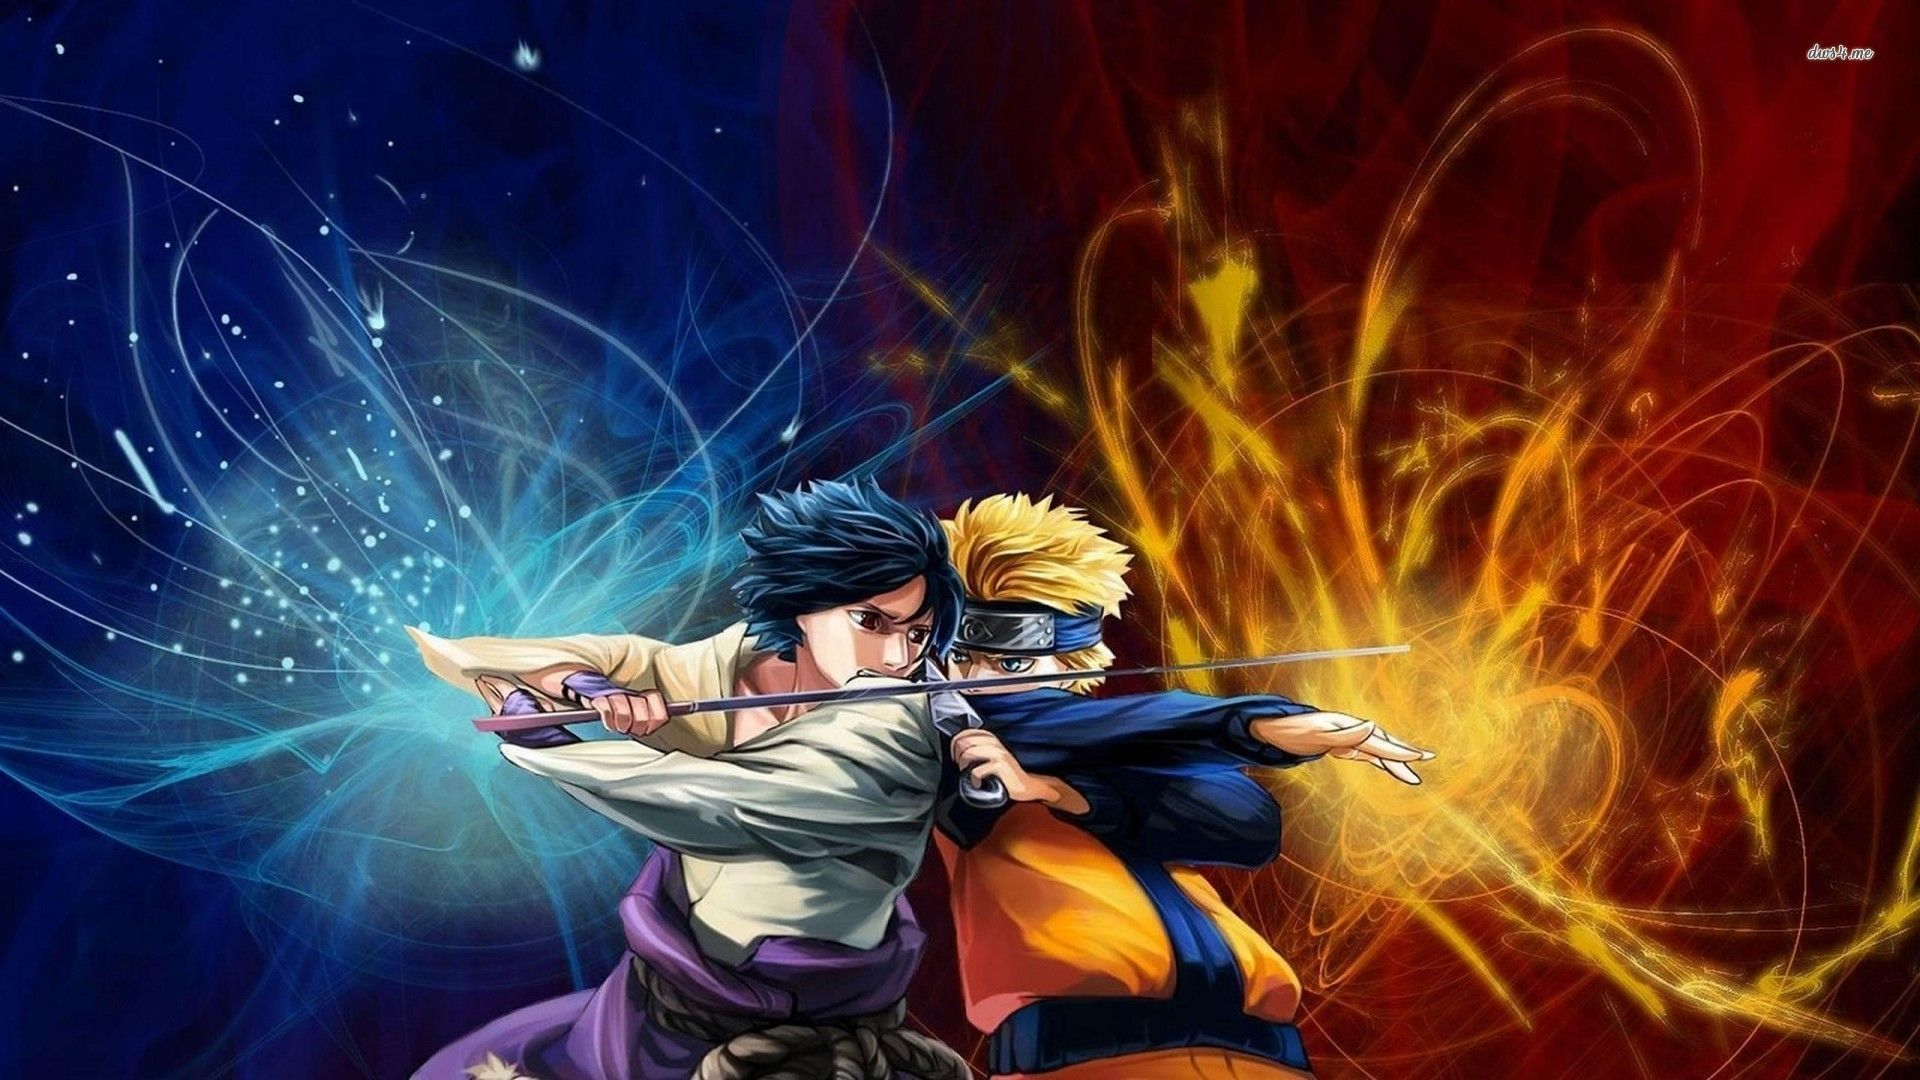 Naruto Vs Sasuke Wallpapers Top Free Naruto Vs Sasuke Backgrounds